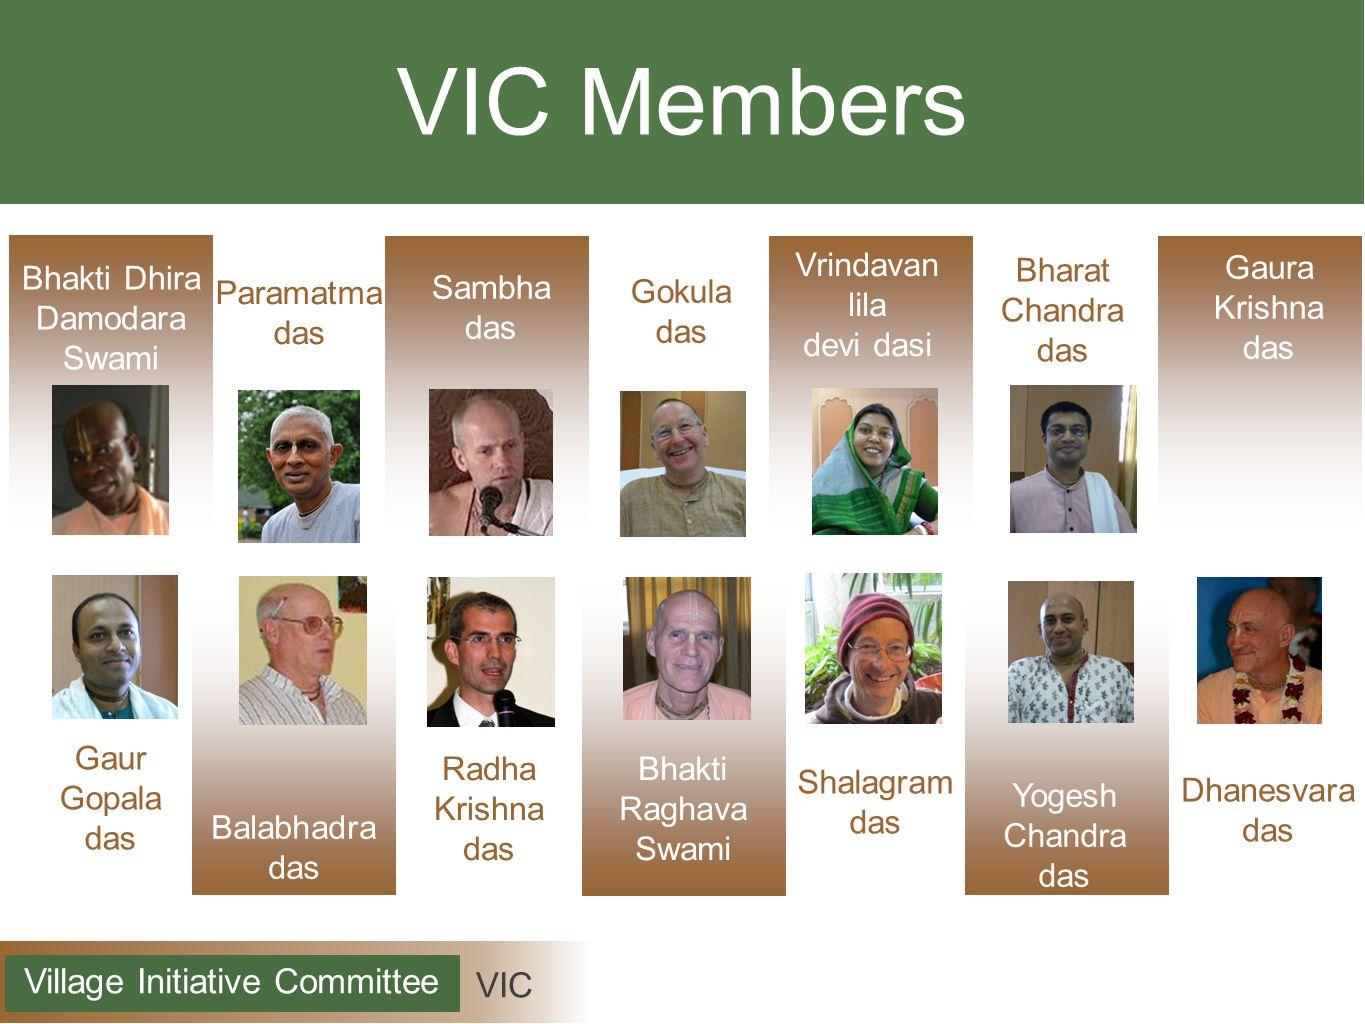 VIC Village Initiative Committee Key Areas Awareness Understand - Identify - Execute Communities Facilitate - Advise - Support Varnasrama Colleges Train - Equip - Engage